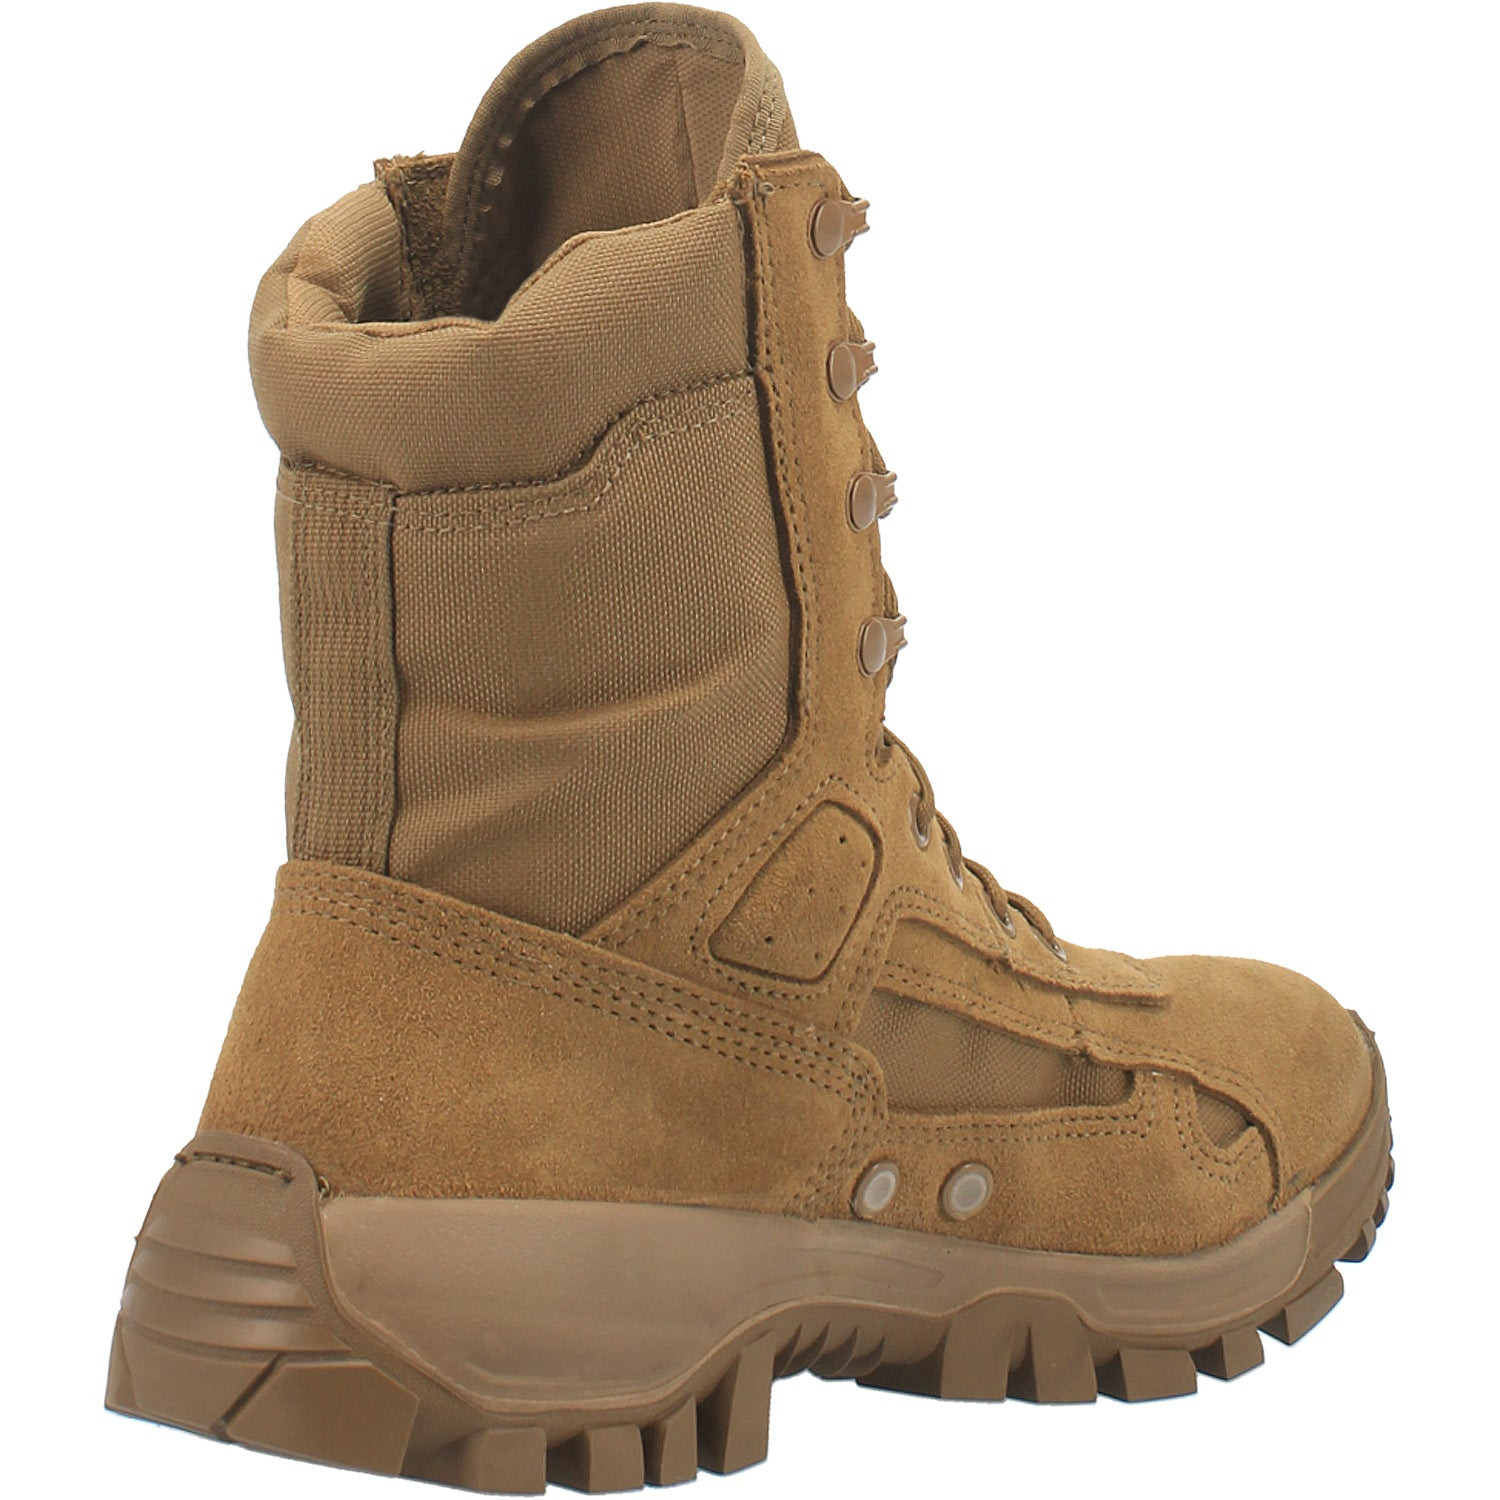 Terassault T1 Hot Weather Performance Combat Boot 14940747431978